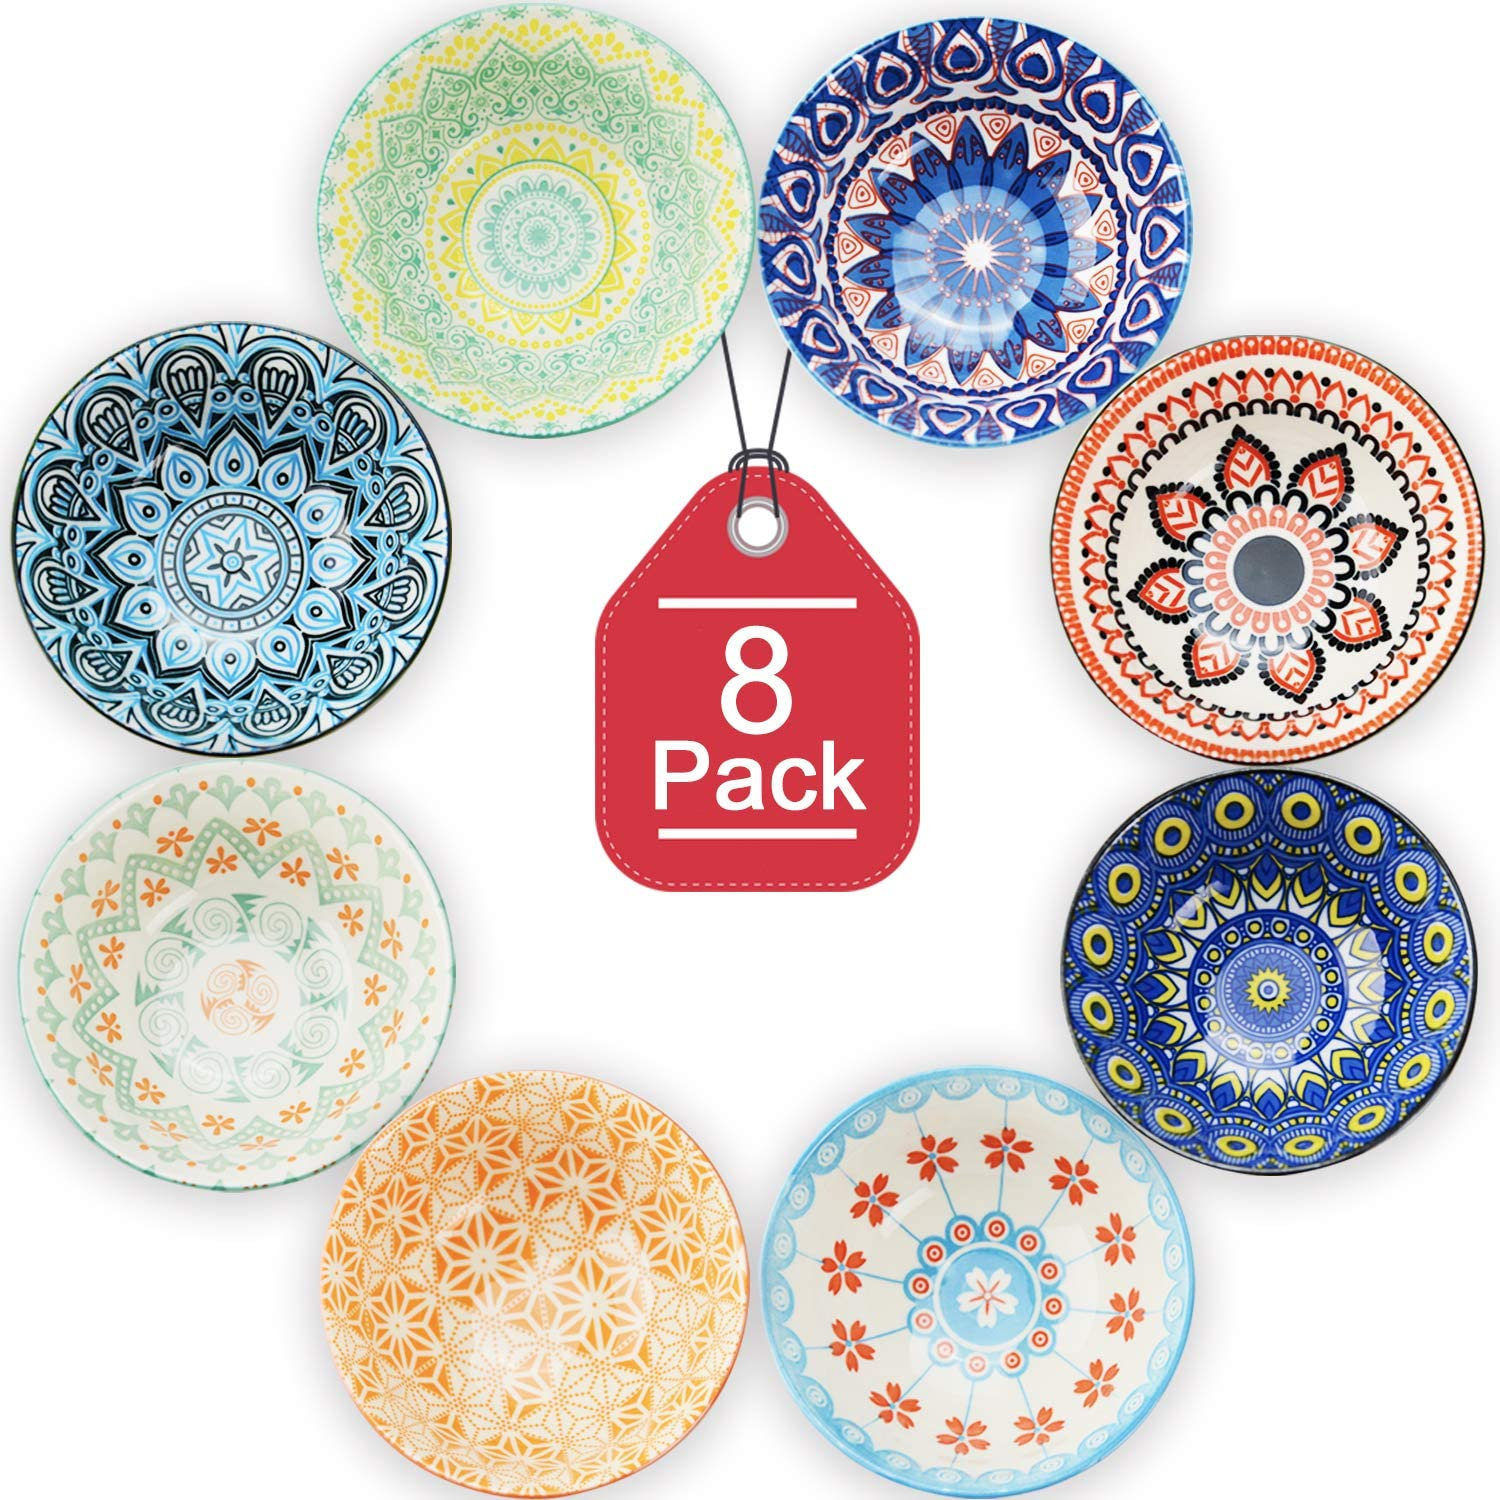 Farielyn-X 8 Pack Small Ceramic Bowls - Porcelain, Soup, Salad, Pasta, Rice, Dessert, Yoghurt, Condiments, Side Dishes, Dip, Ice Cream Ceramic Bowls, 4.75 Inch Diameter, 10 Fluid Ounce (1.25 Cup) Capa